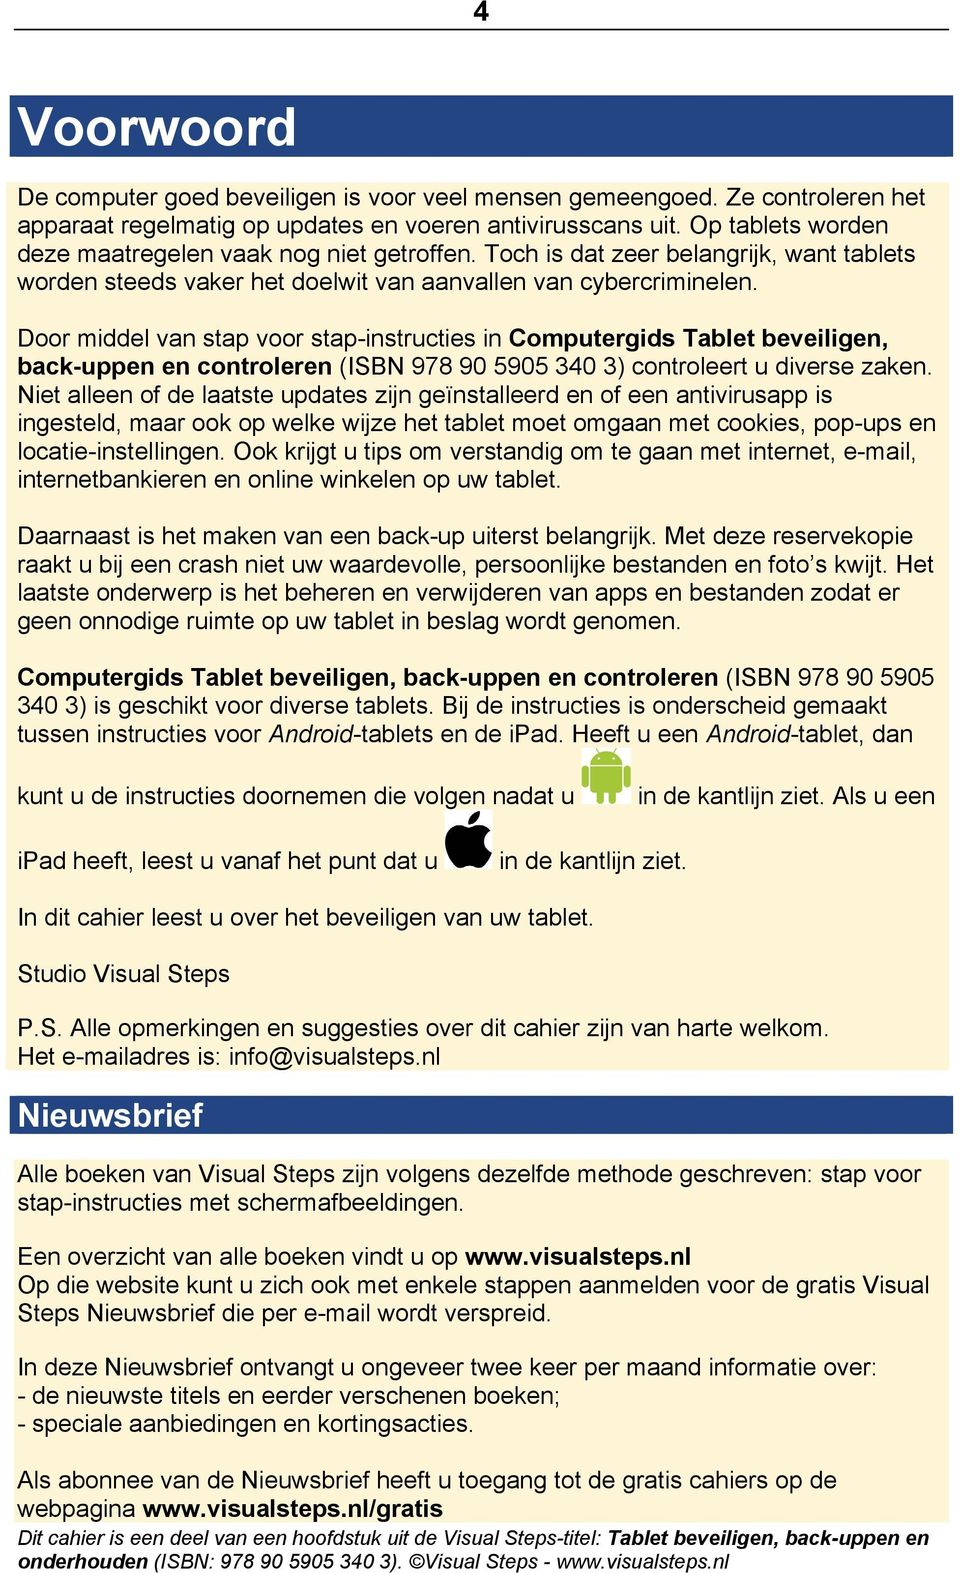 Door middel van stap voor stap-instructies in Computergids Tablet beveiligen, back-uppen en controleren (ISBN 978 90 5905 340 3) controleert u diverse zaken.